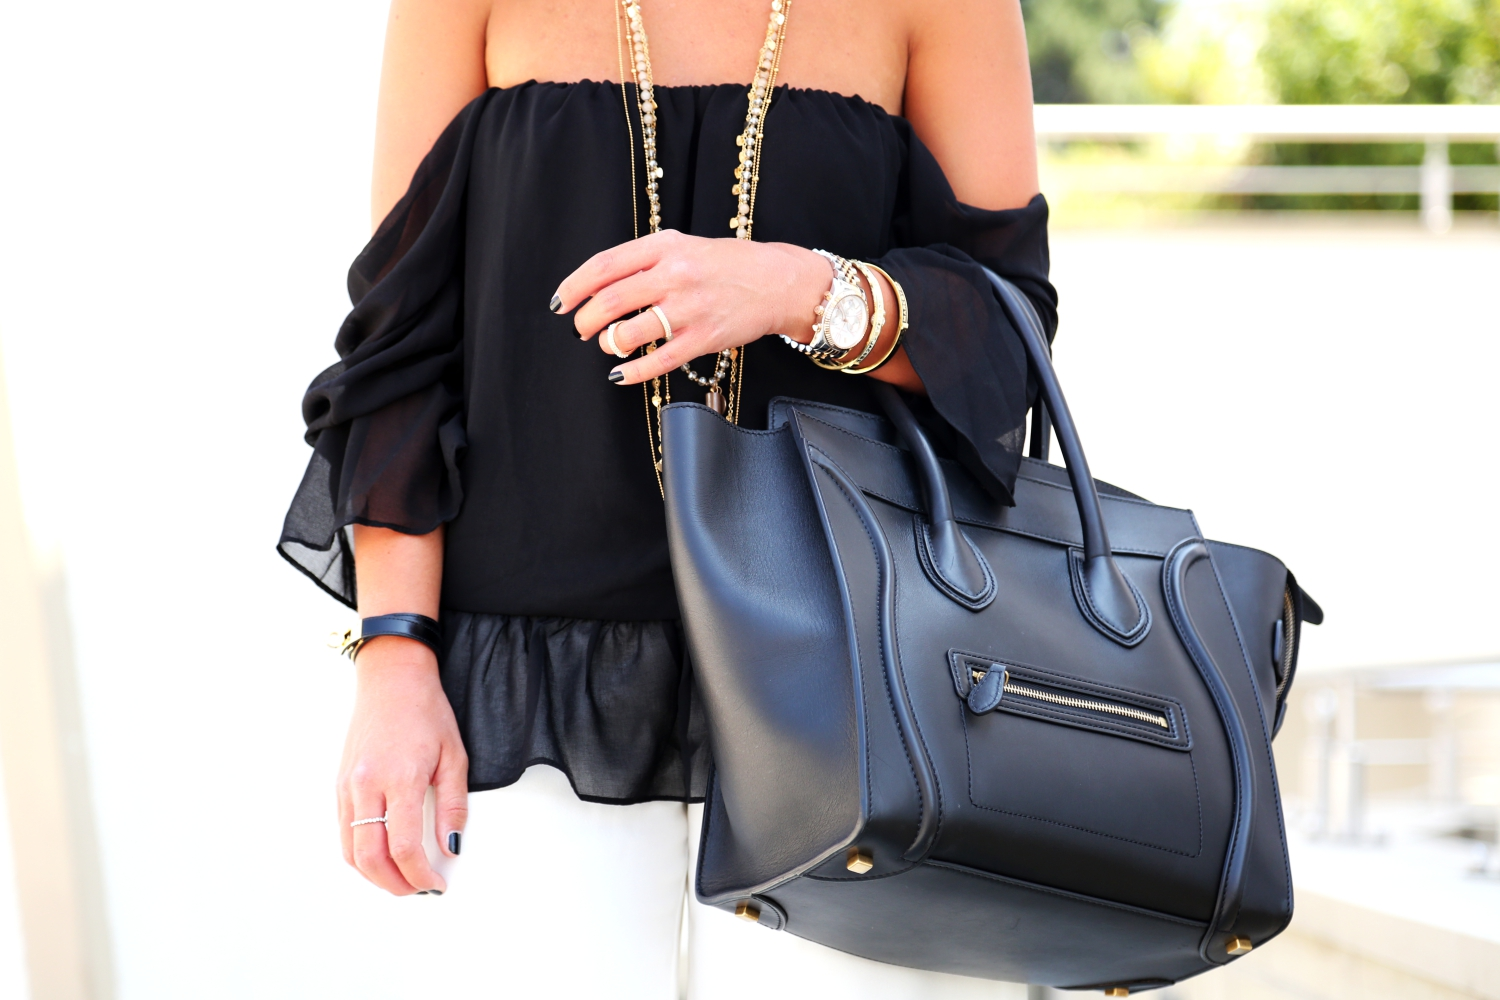 outfit-details-fashionhippieloves-celine-luggage